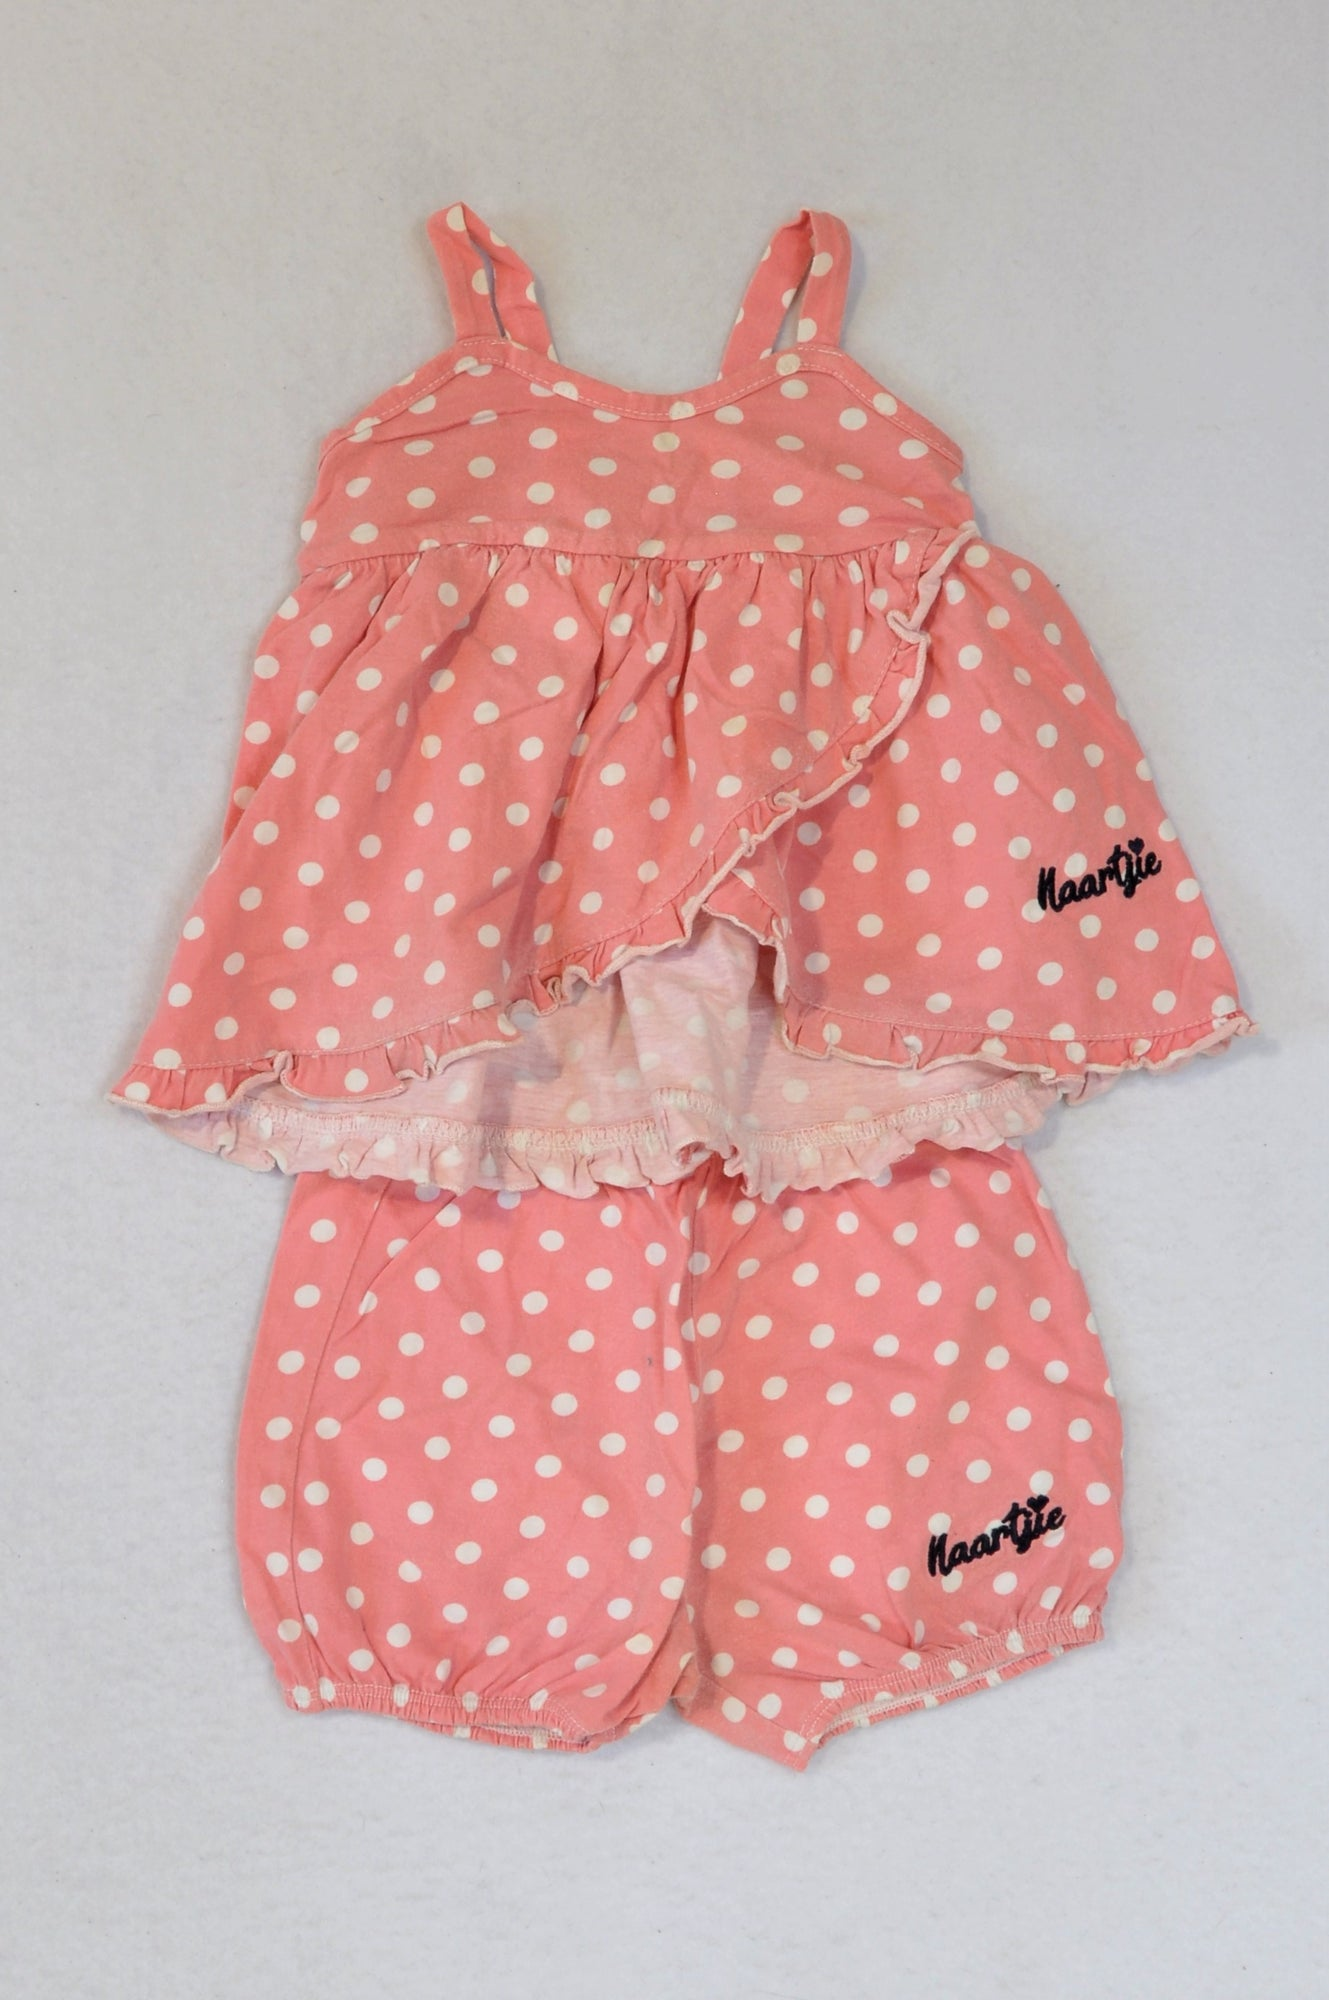 Naartjie Coral Dotty Dress & Shorts Outfit Girls 12-18 months